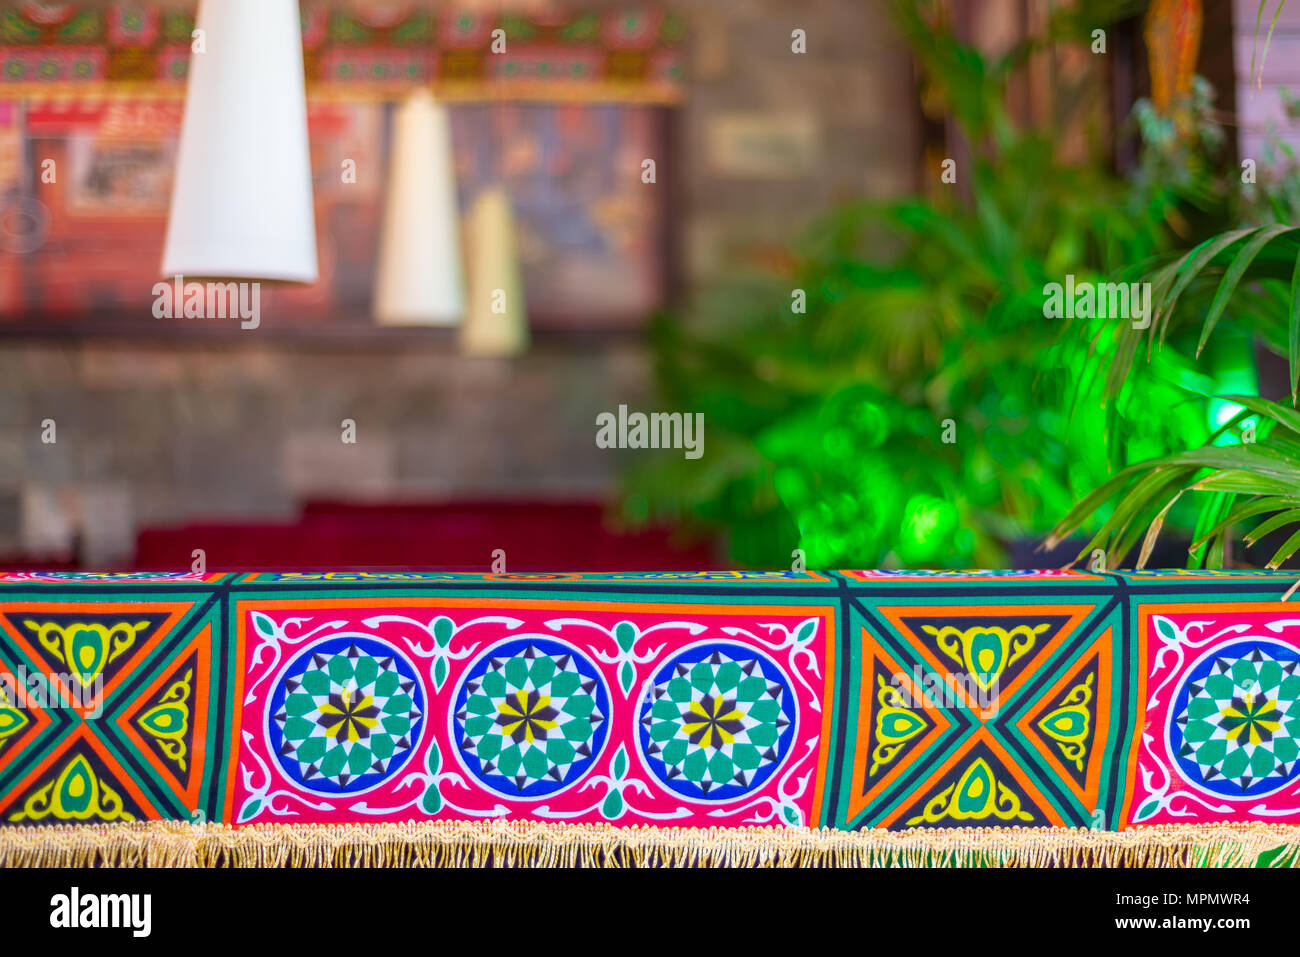 Traditional Ramadan decorations with blurry background of tables, lanterns, and green plants - Stock Image